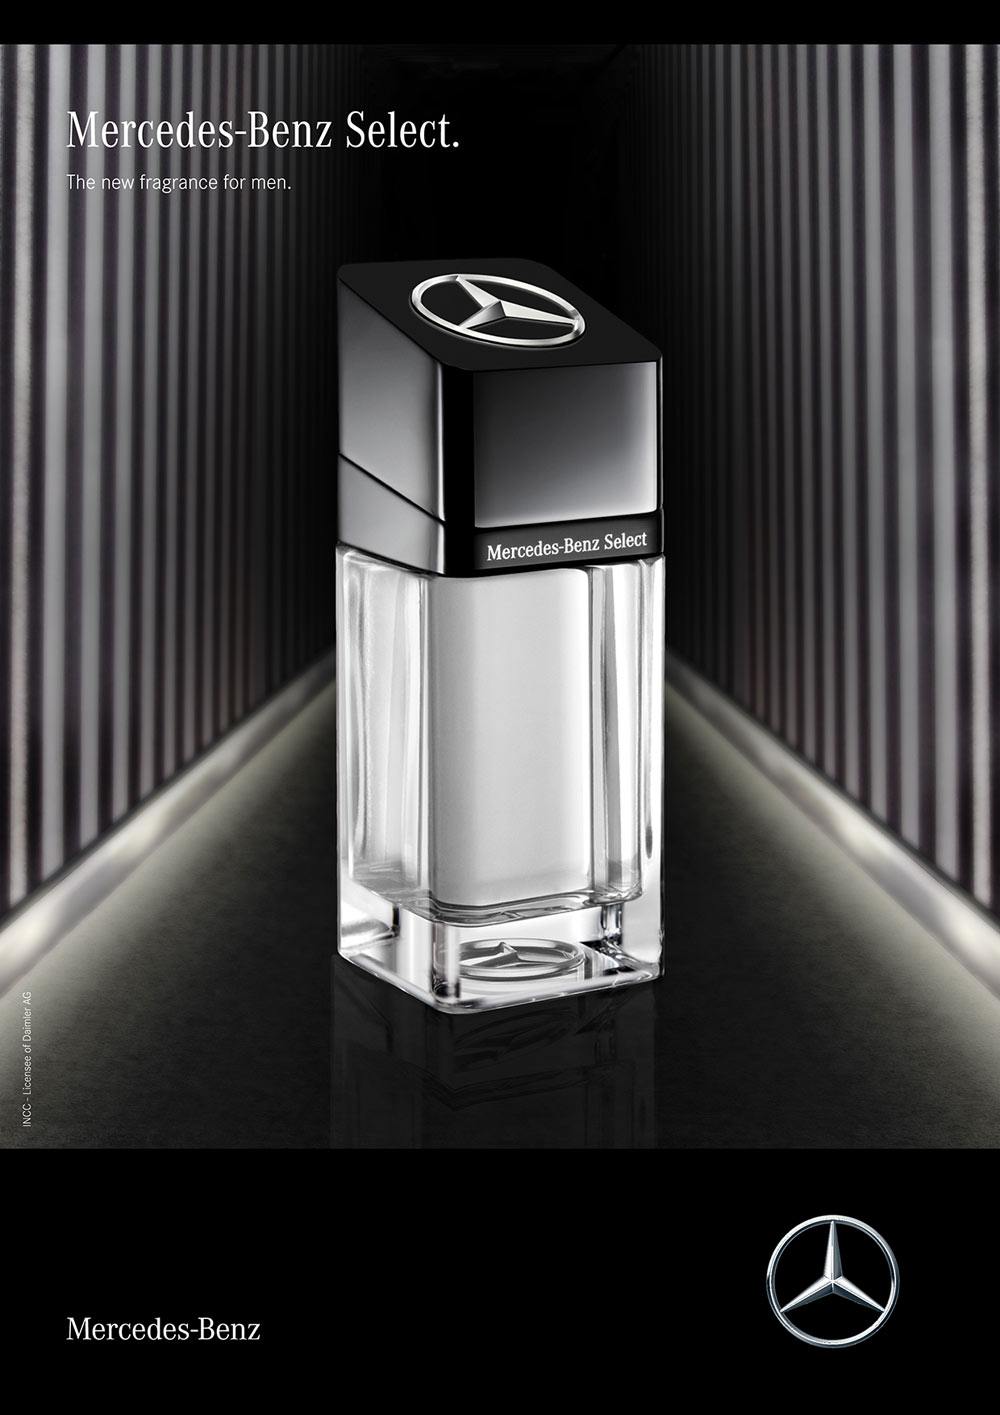 mercedes benz select mercedes benz cologne a new